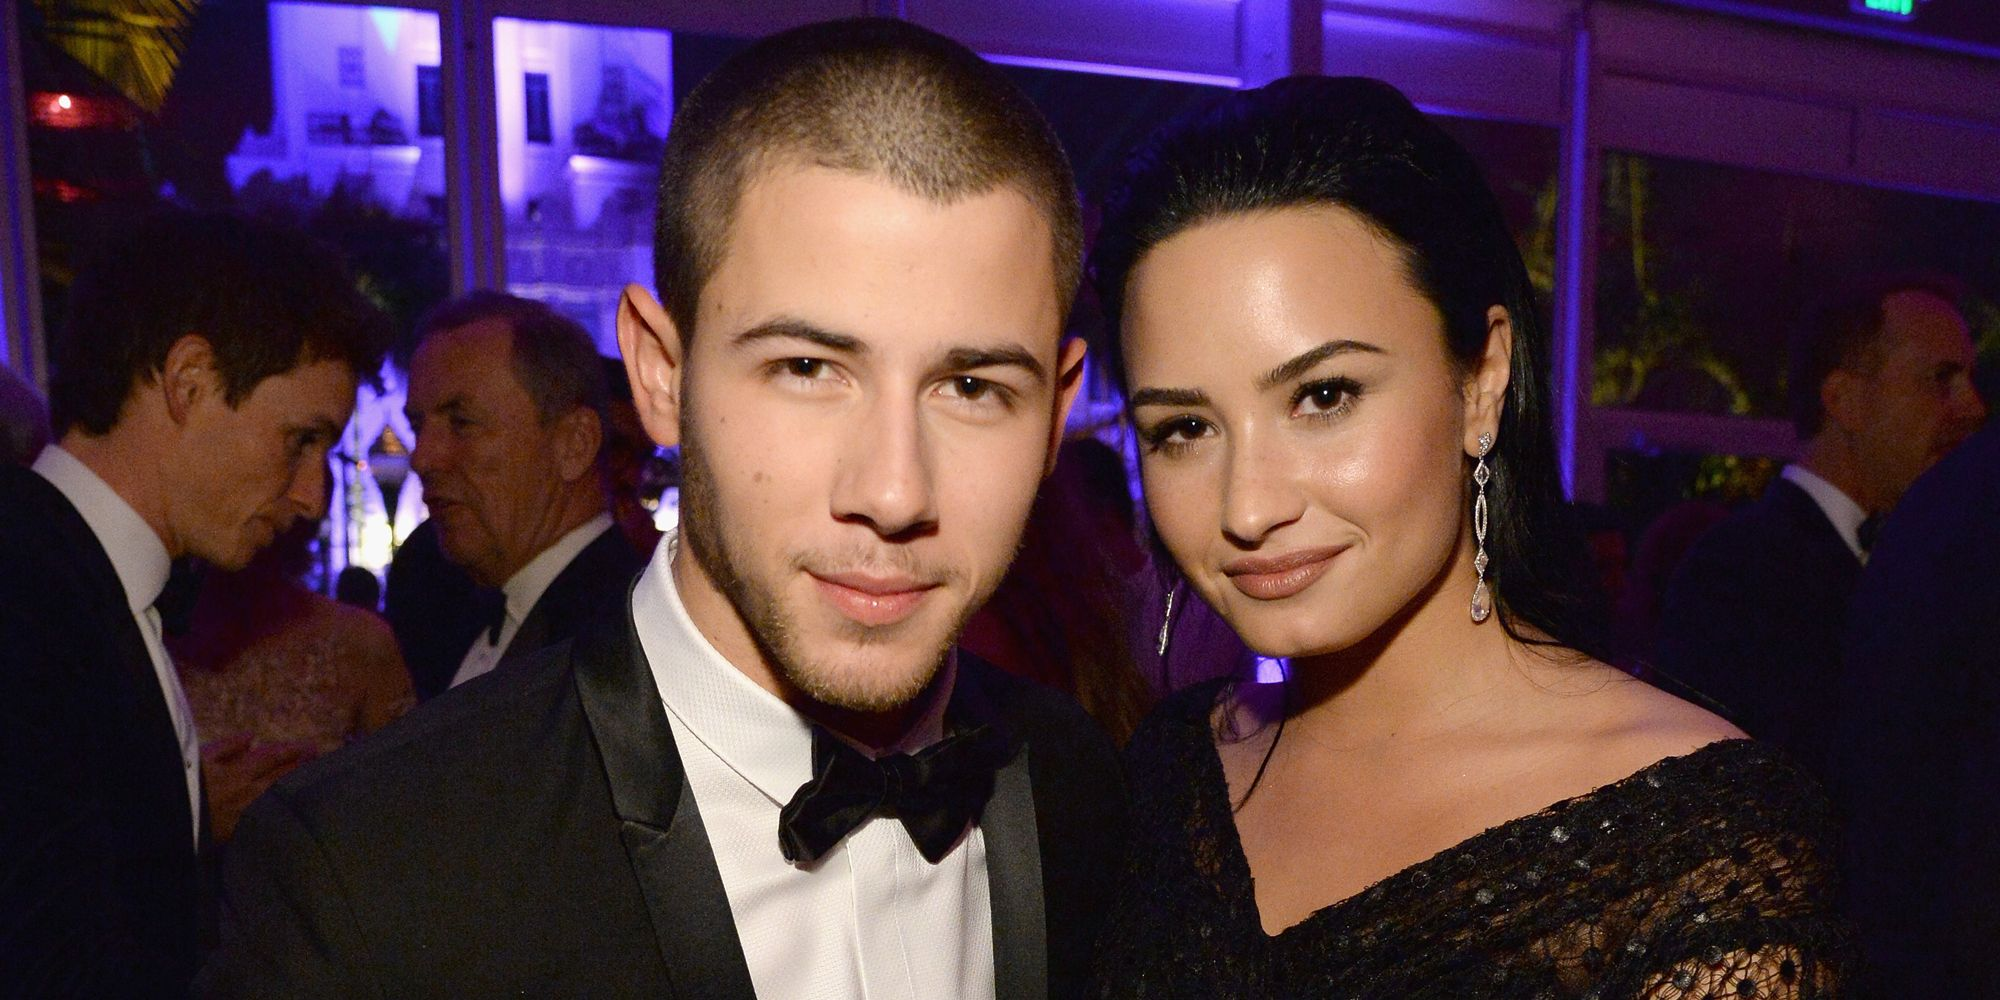 Who is demi lovato dating nick jonas